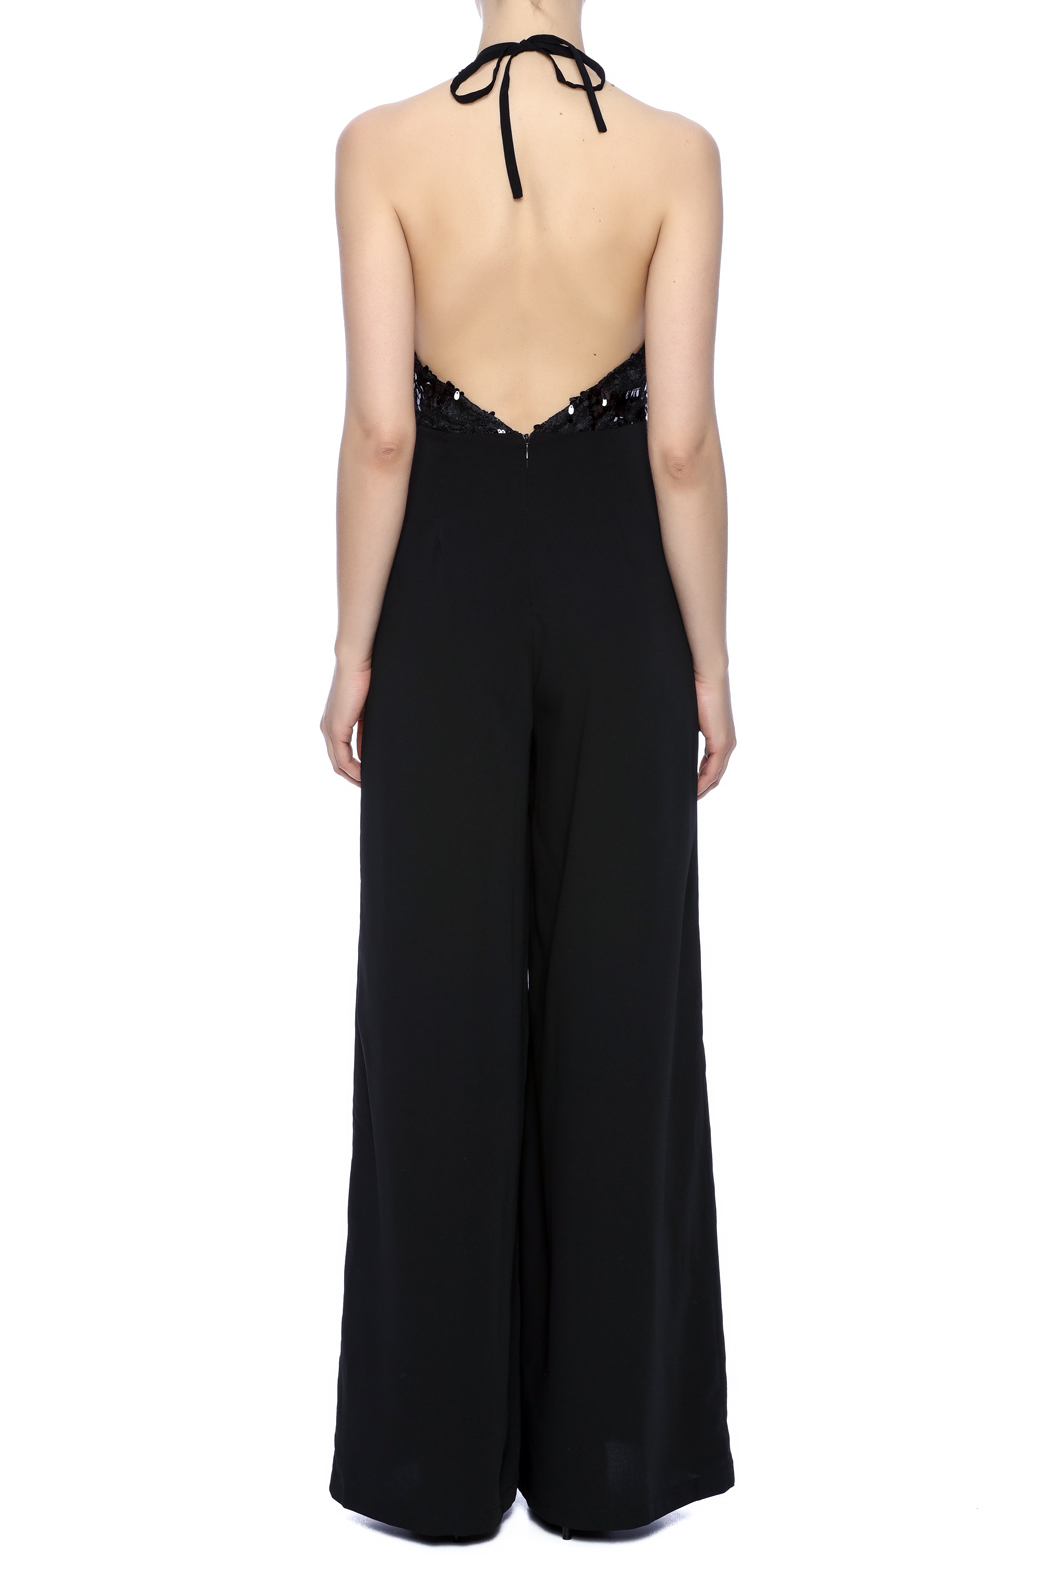 Mustard Seed Bejeweled Black Jumpsuit - Back Cropped Image